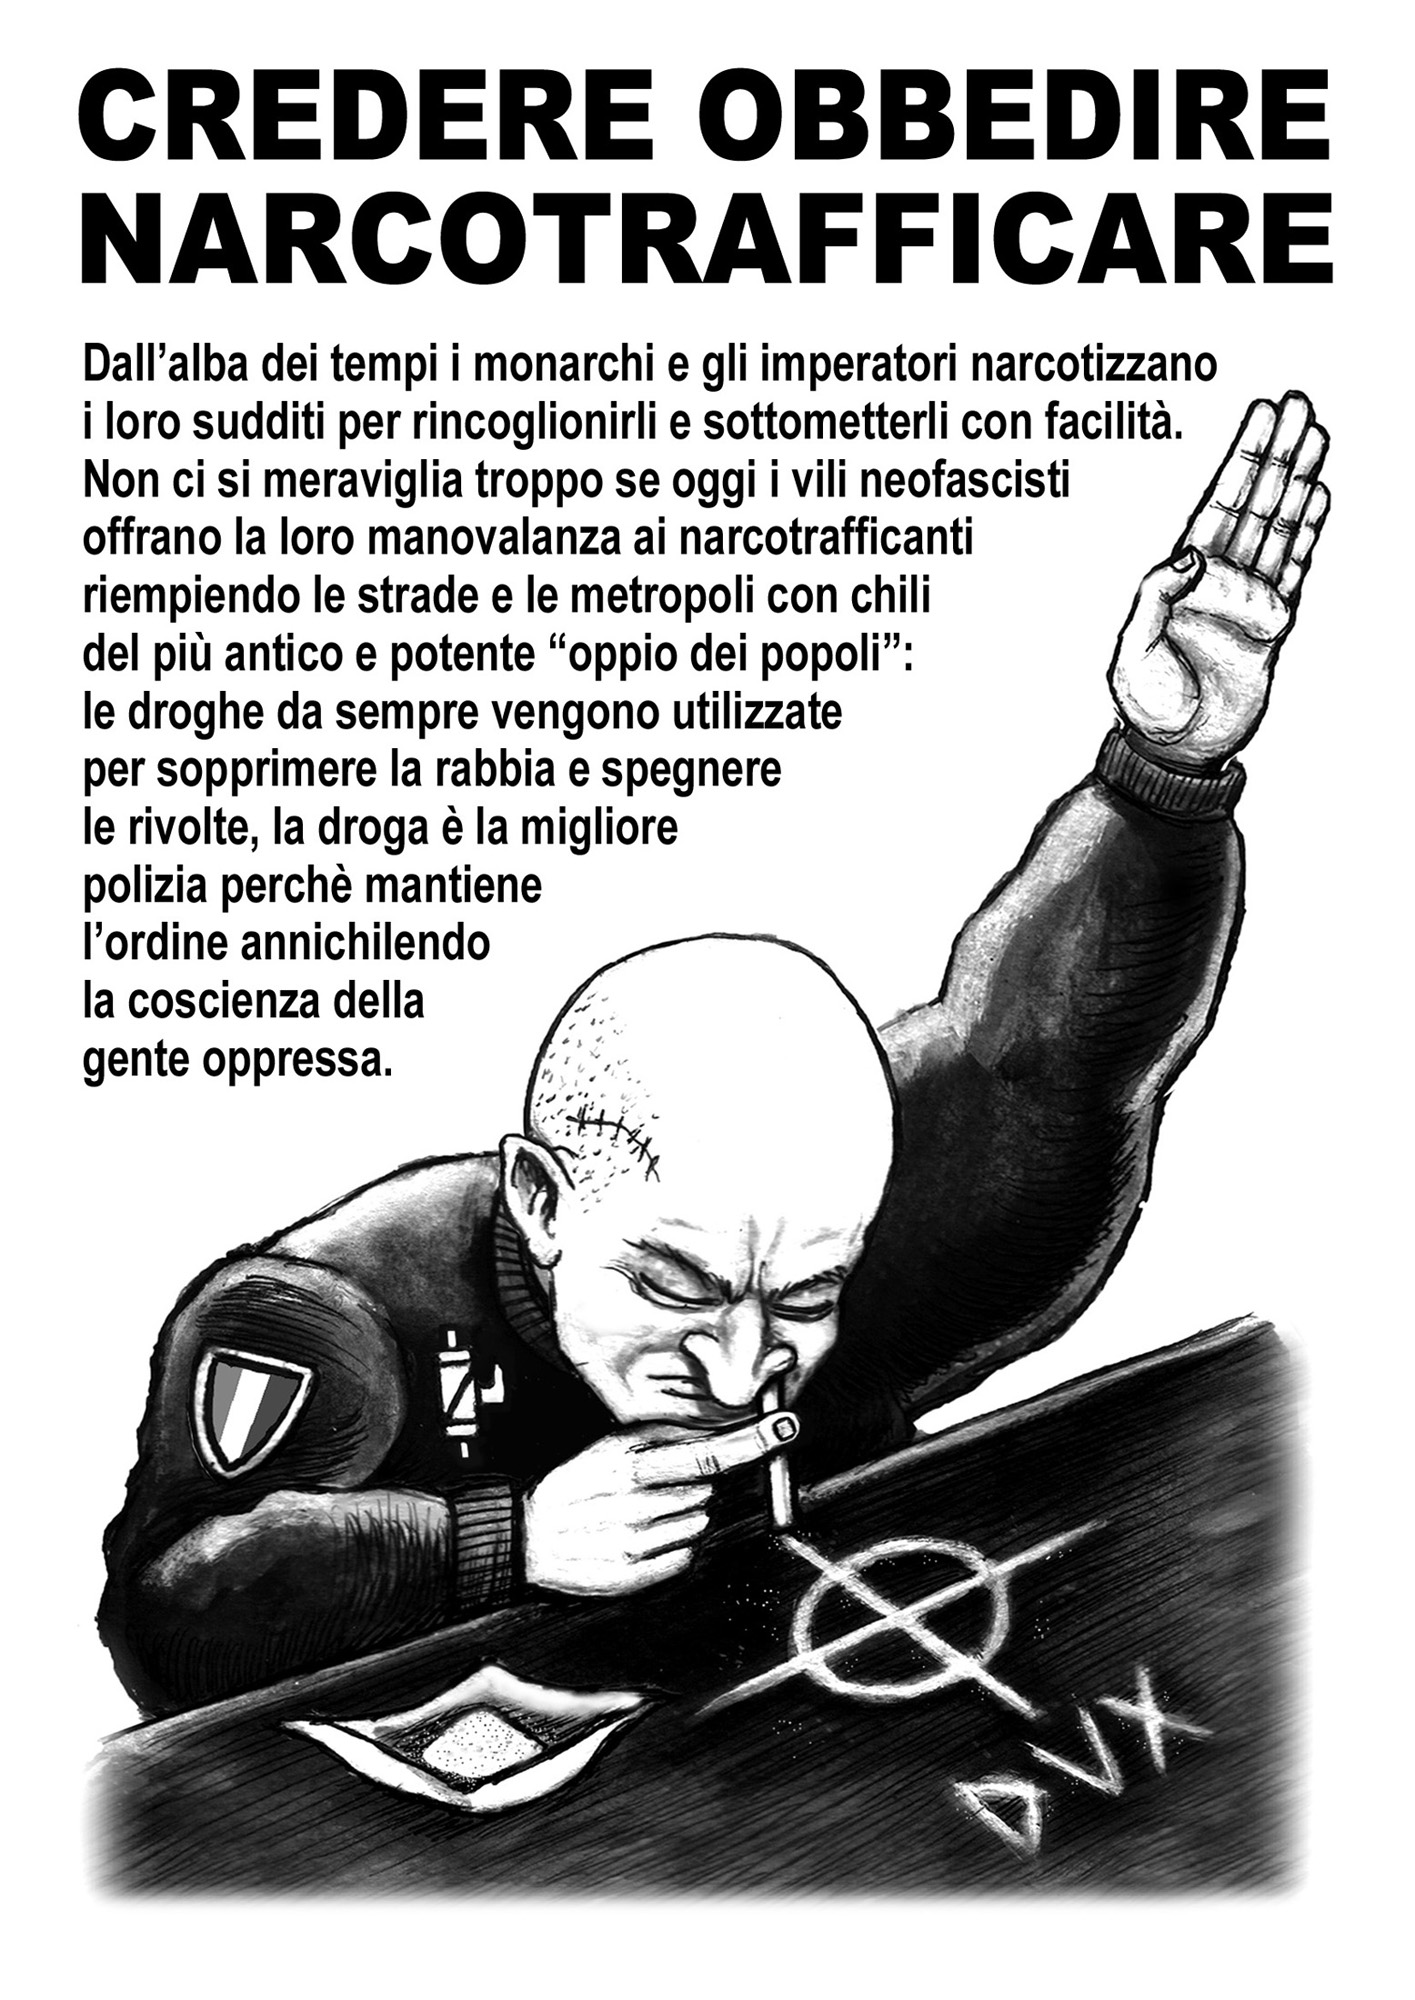 narcofascismo - graficanera - NO COPYRIGHT